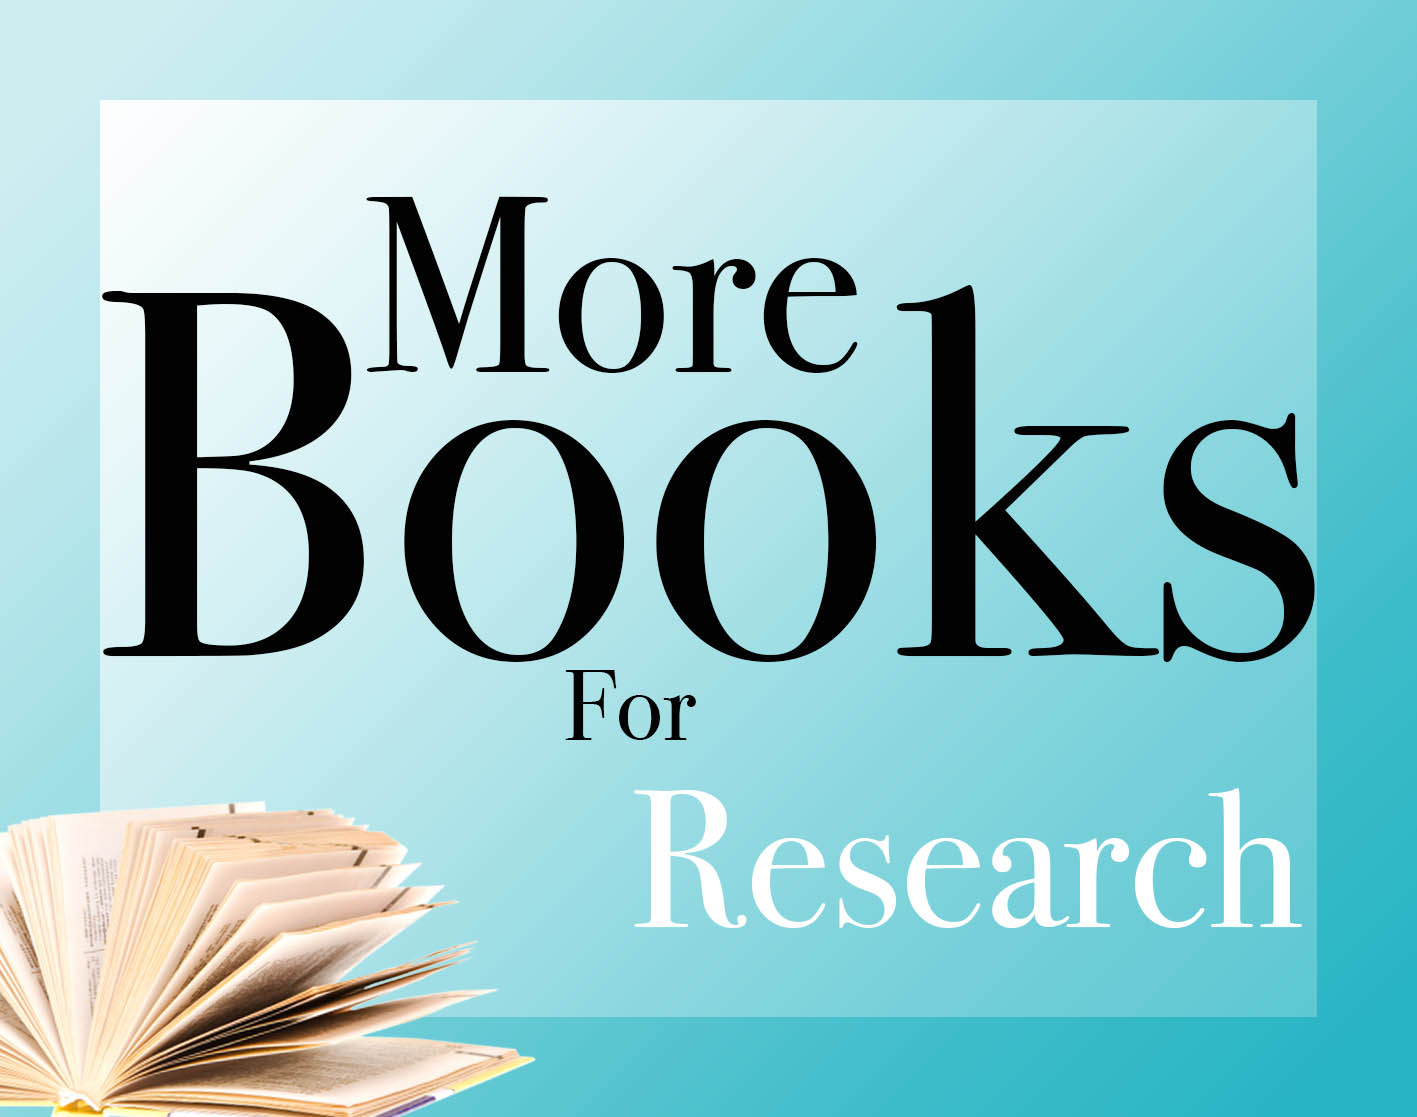 More books for research logo